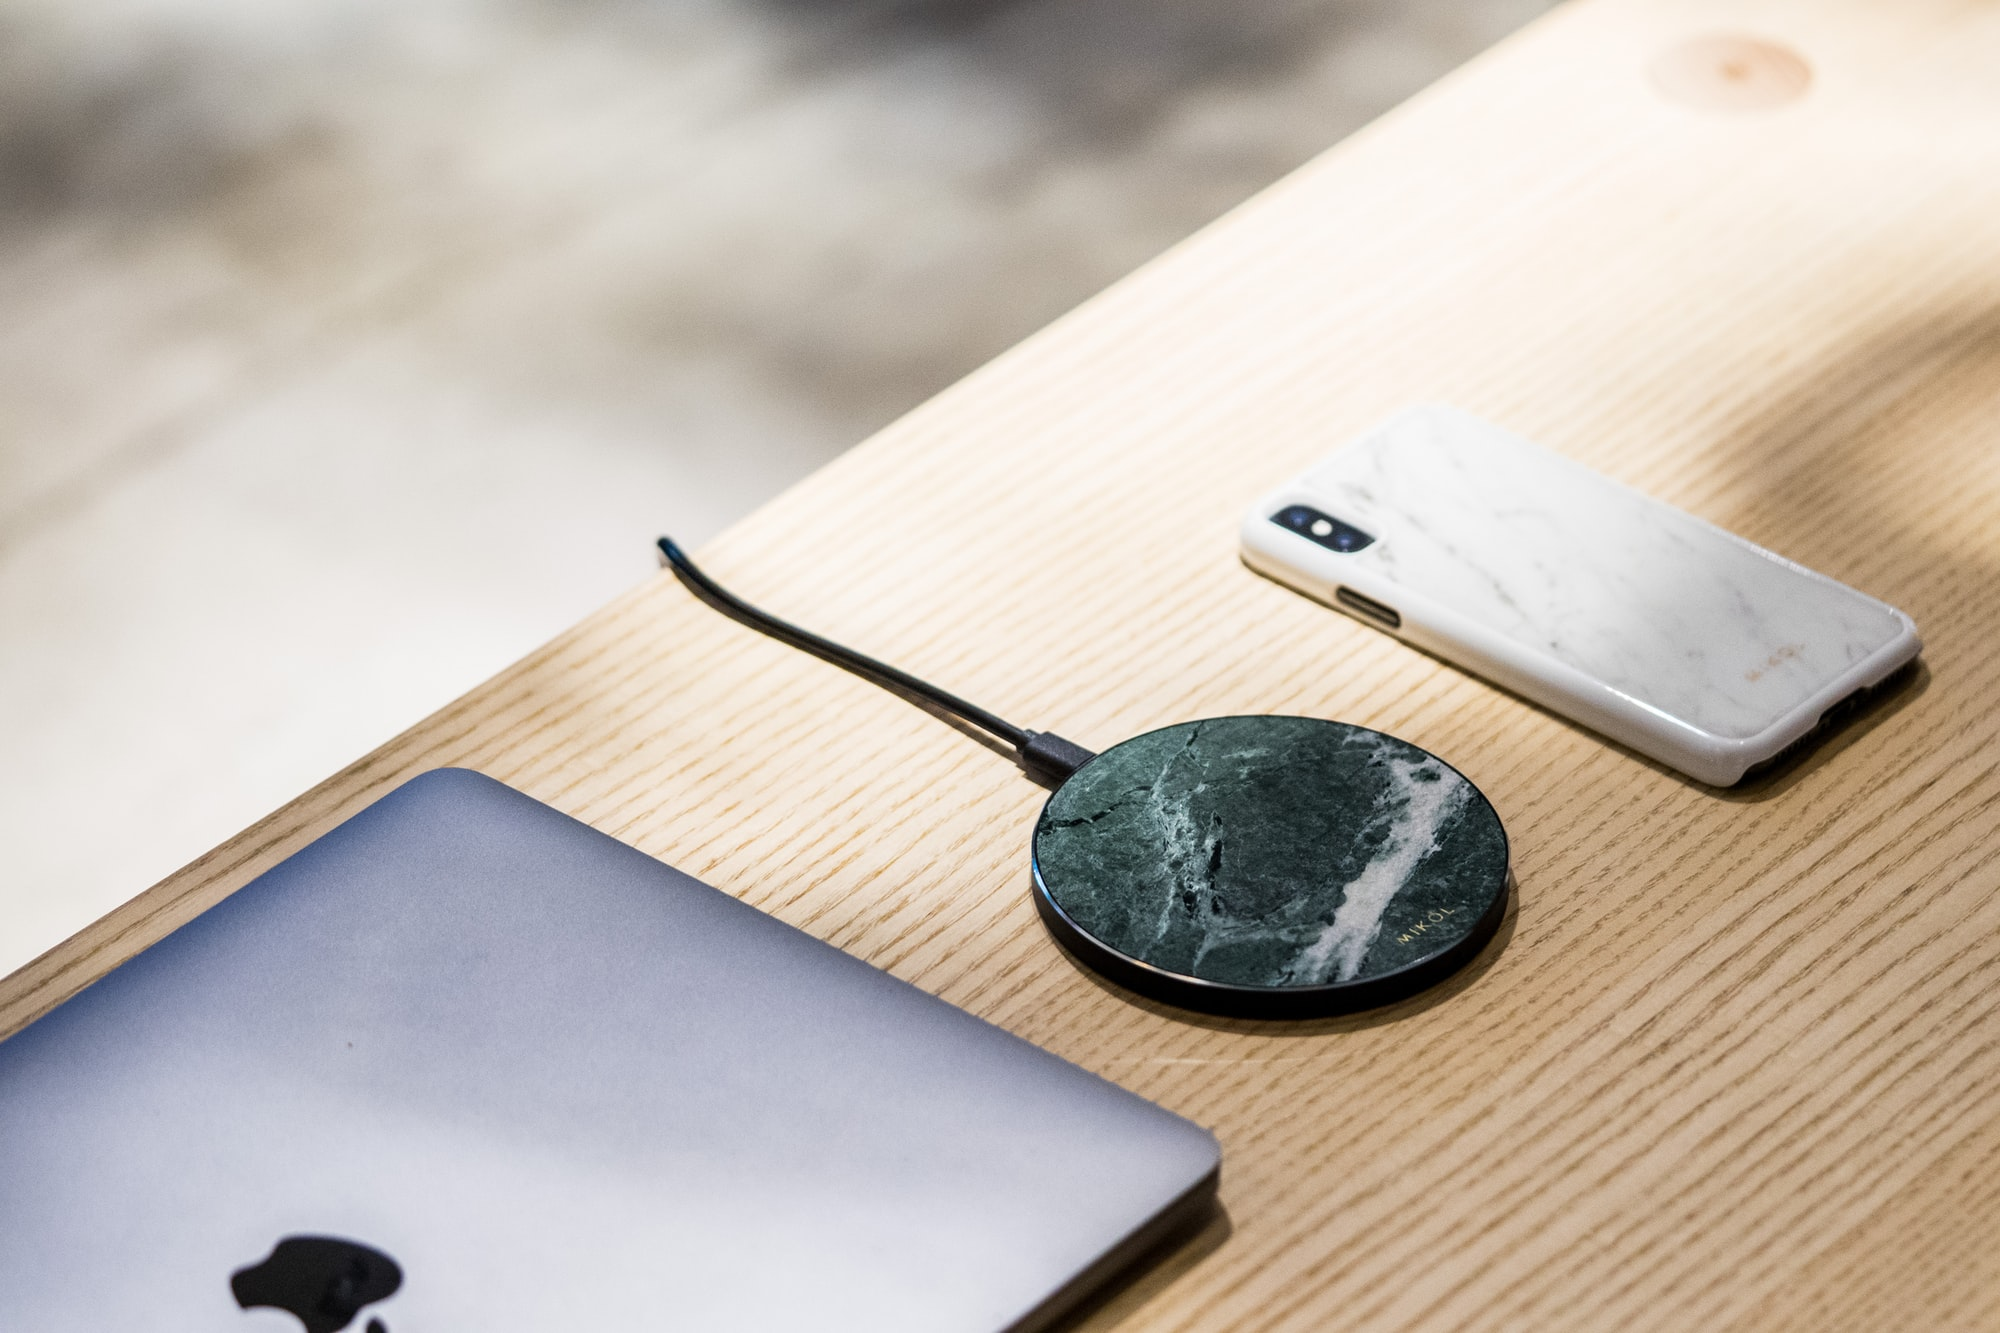 Real Marble Wireless charging pad matched with Italian Carrara Marble iPhone XS case by MIKOL.  Would very much appreciate it if you could link: https://www.mikolmarmi.com/